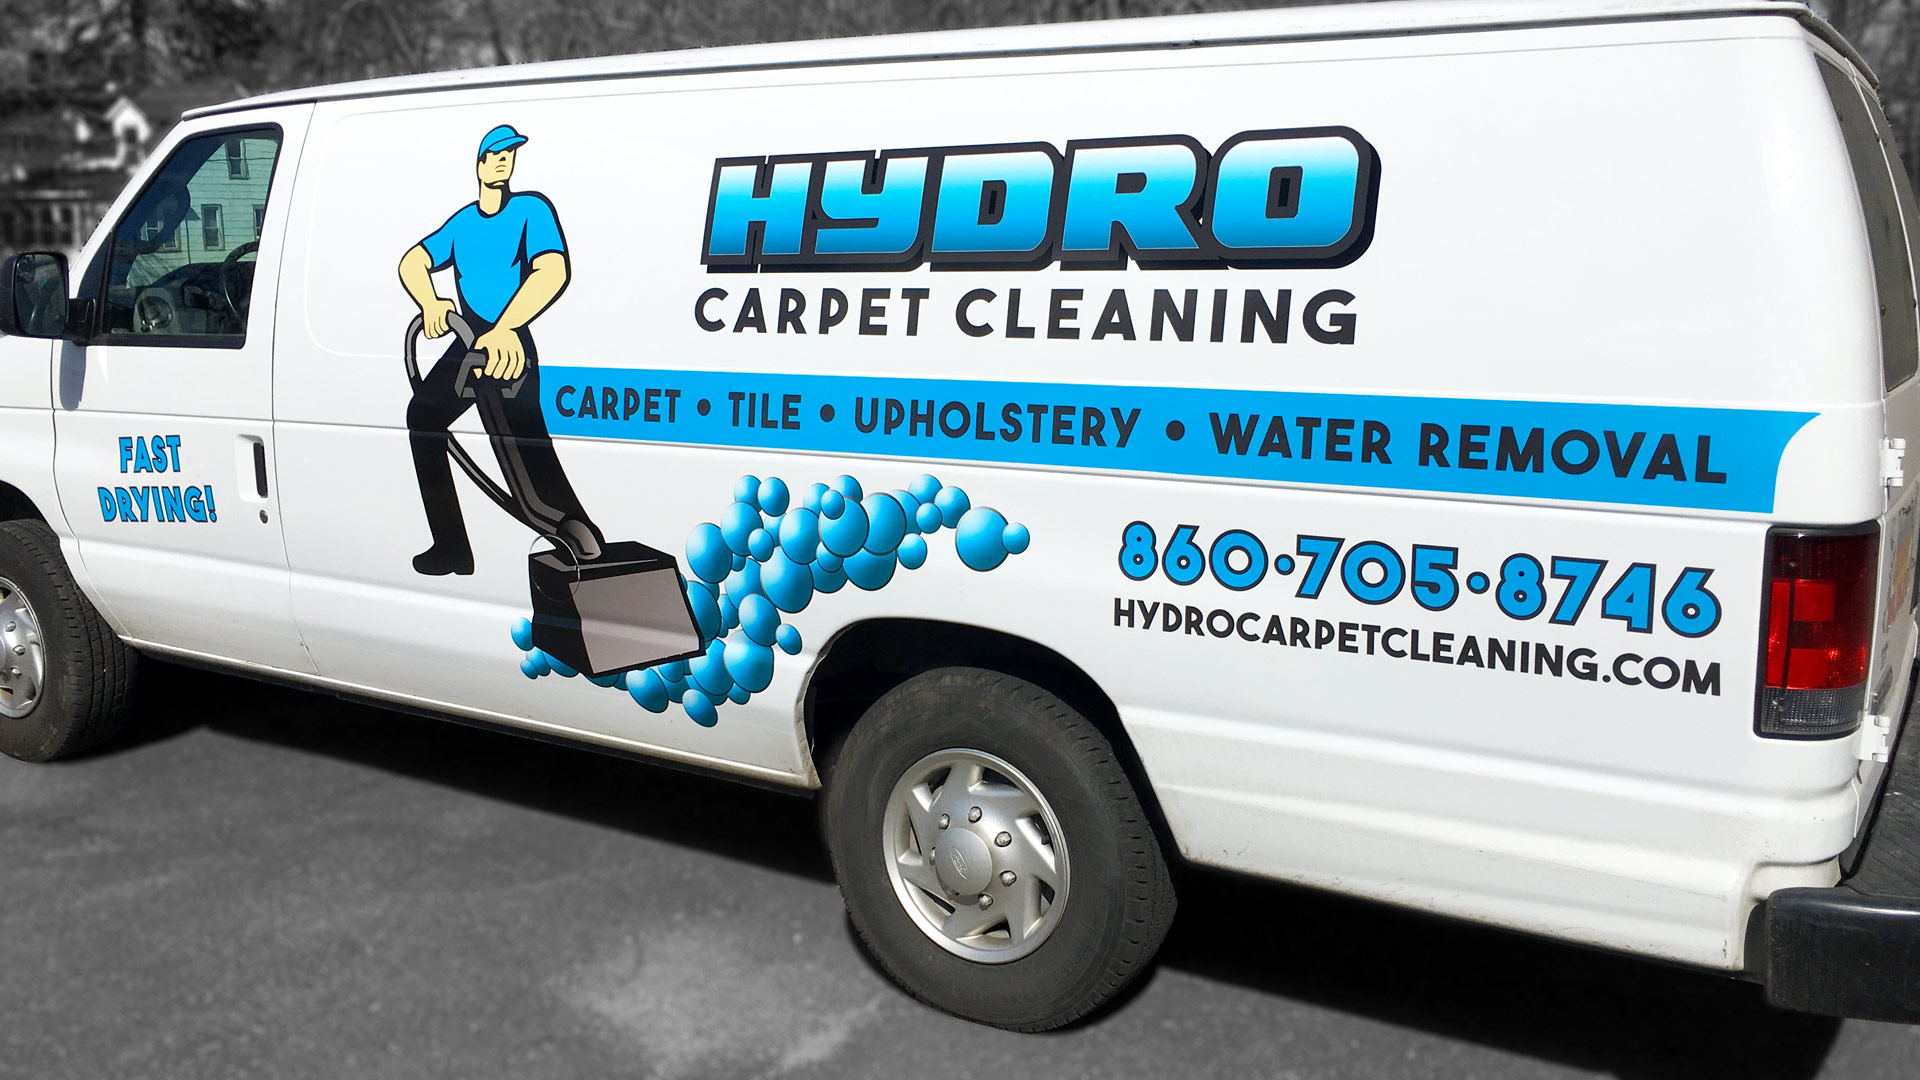 Hydro Carpet Cleaning